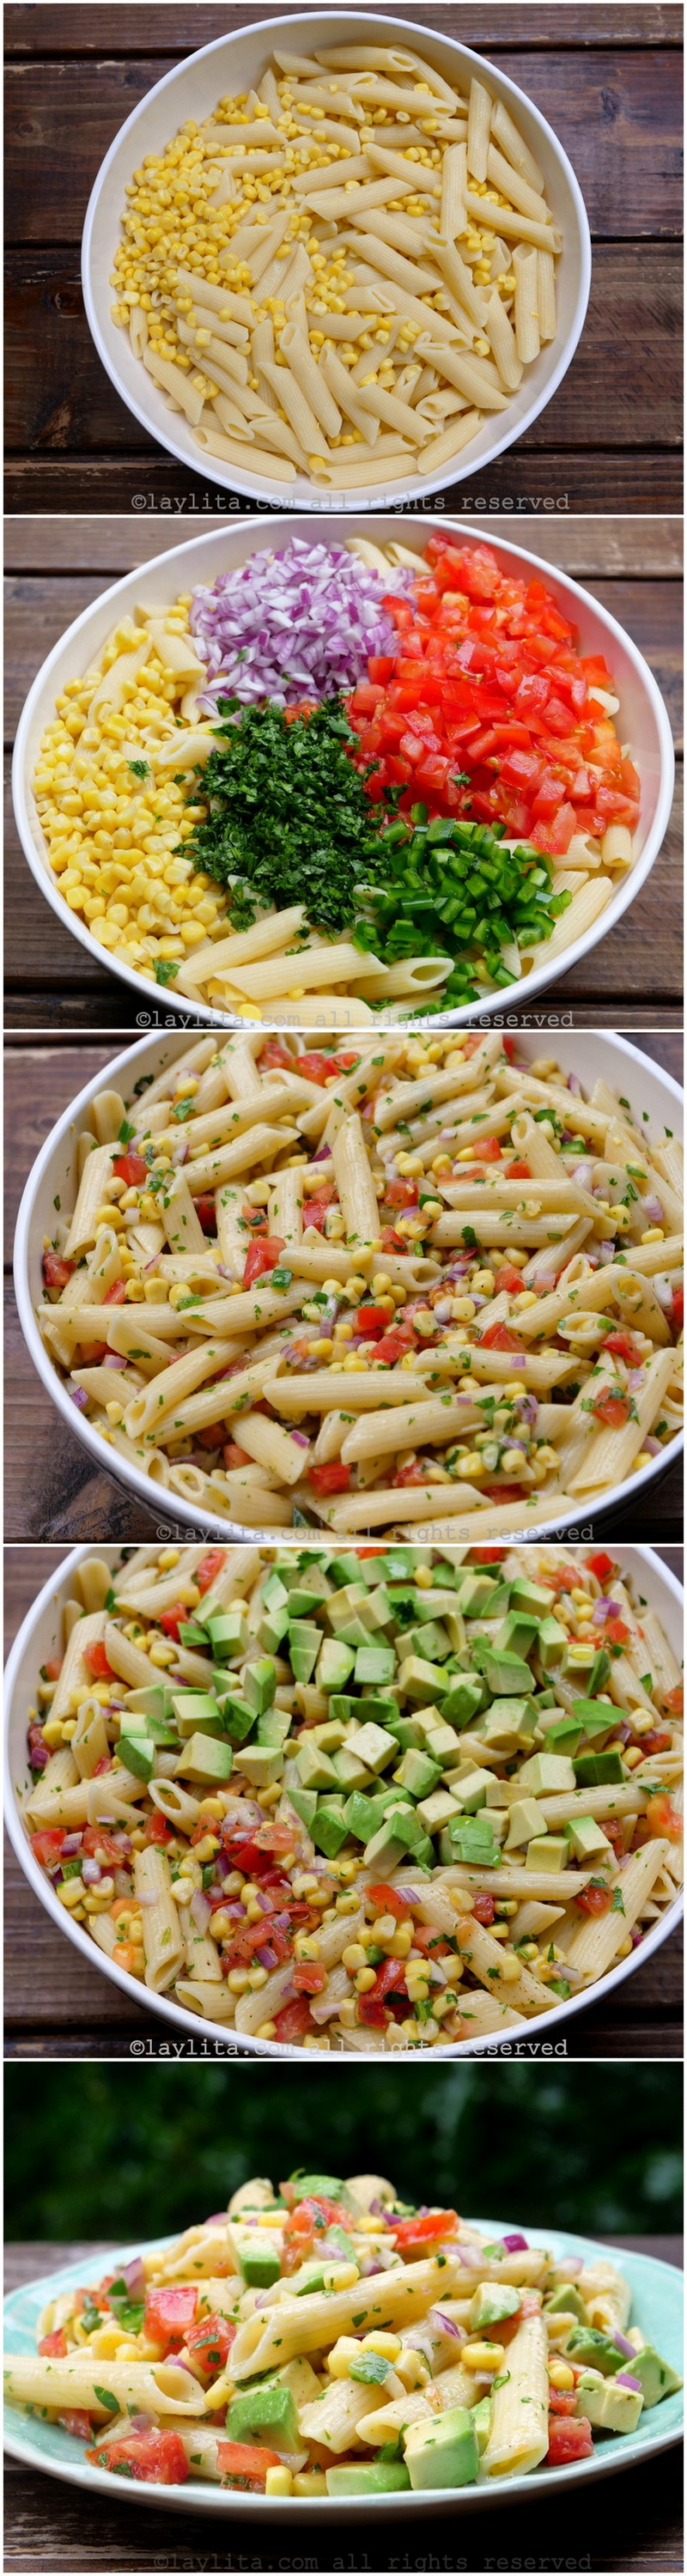 Corn pasta salad with tomato and avocado preparation